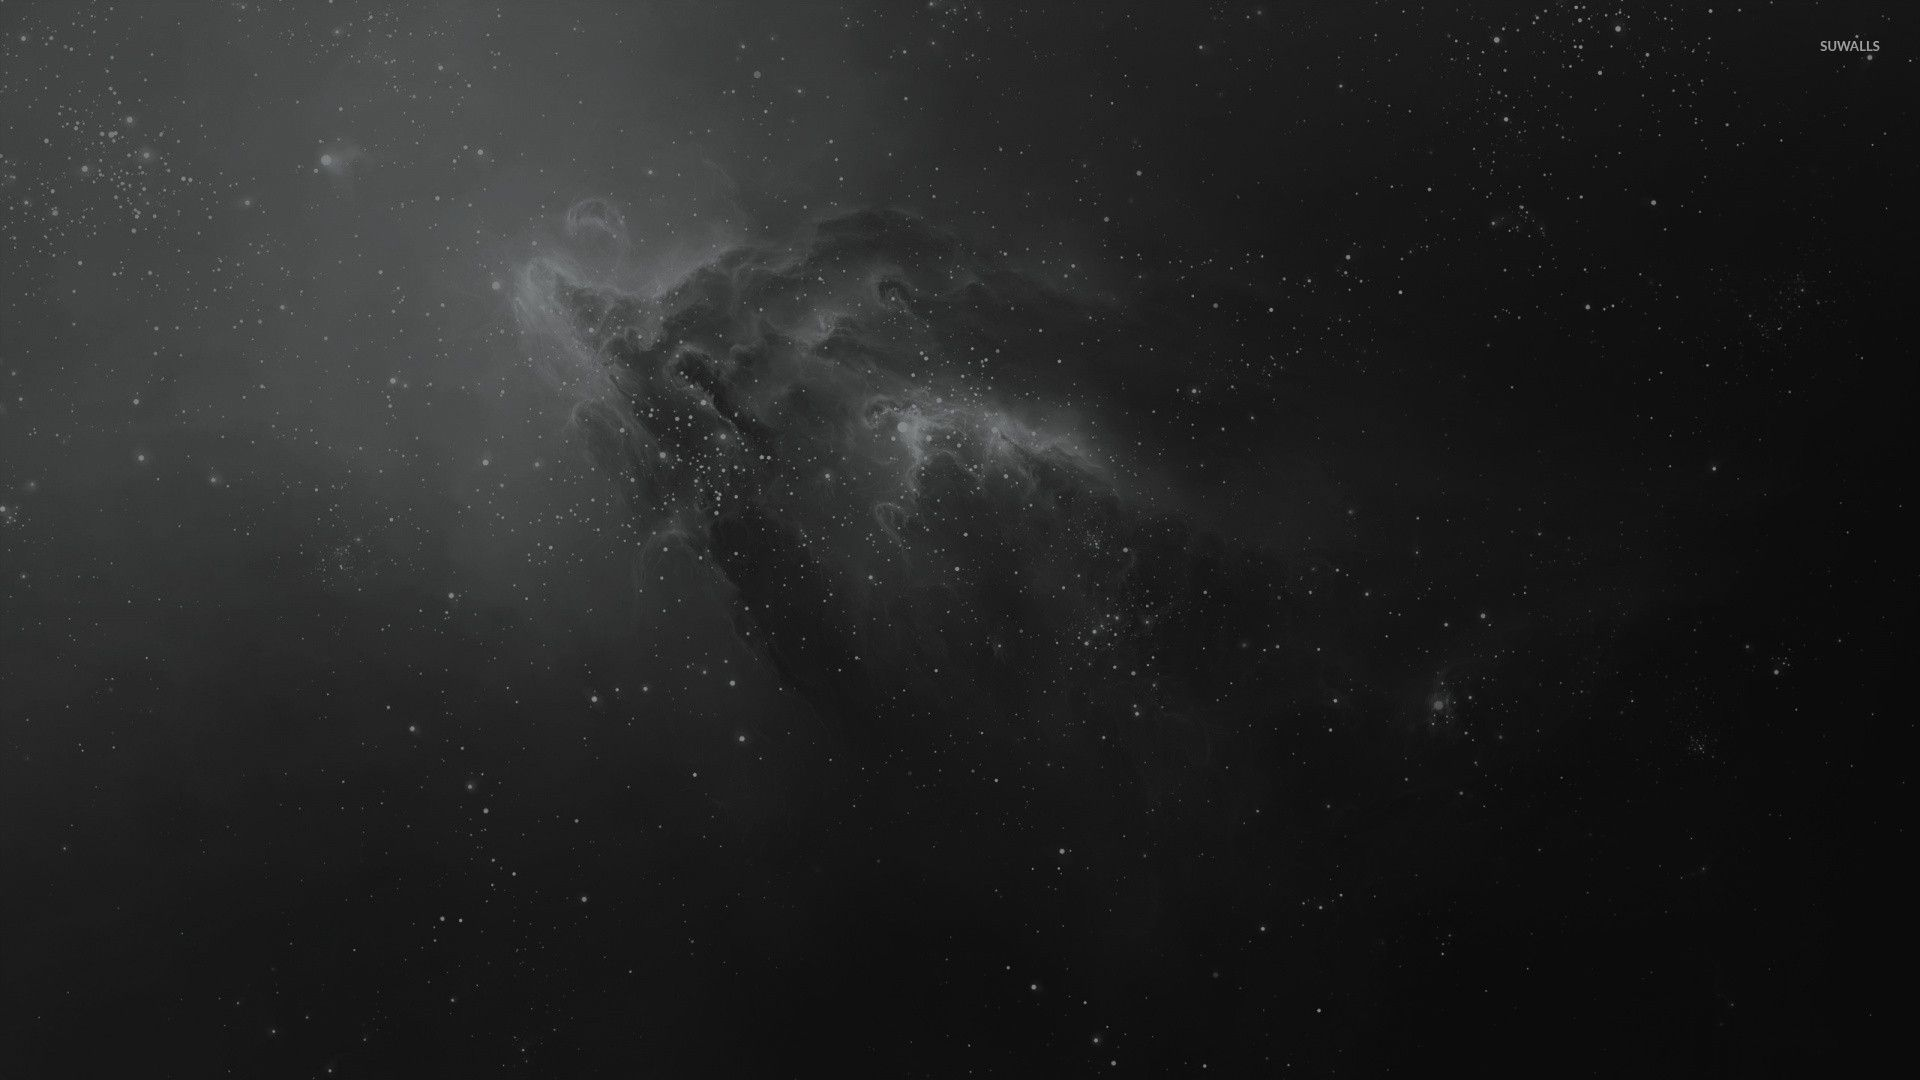 Dark Nebula Wallpaper